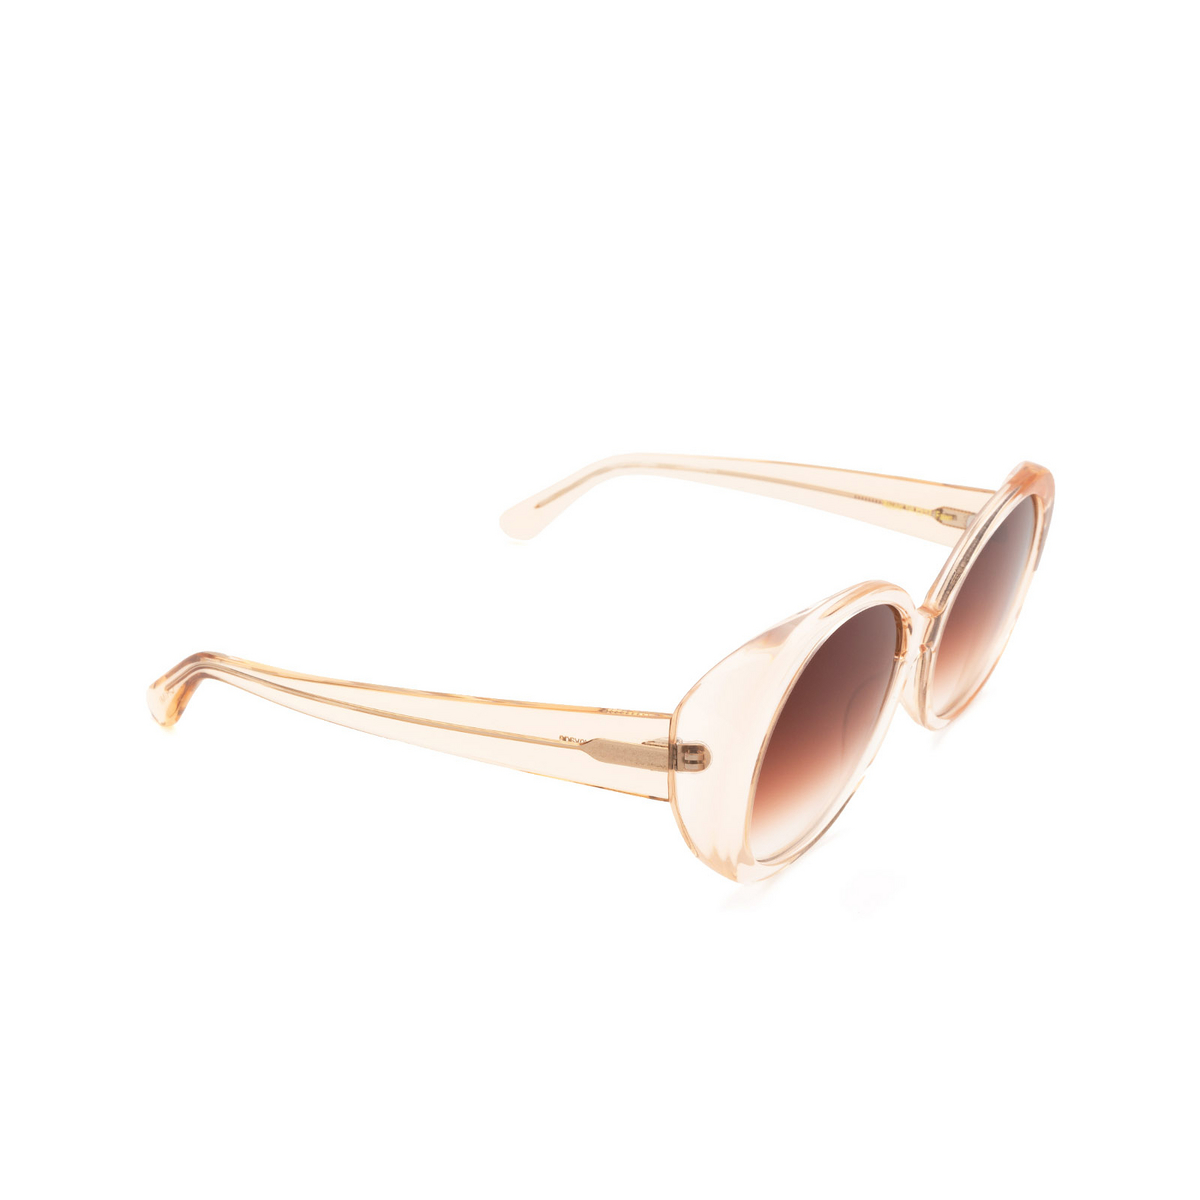 Chimi® Butterfly Sunglasses: Voyage Round color Fawn - three-quarters view.